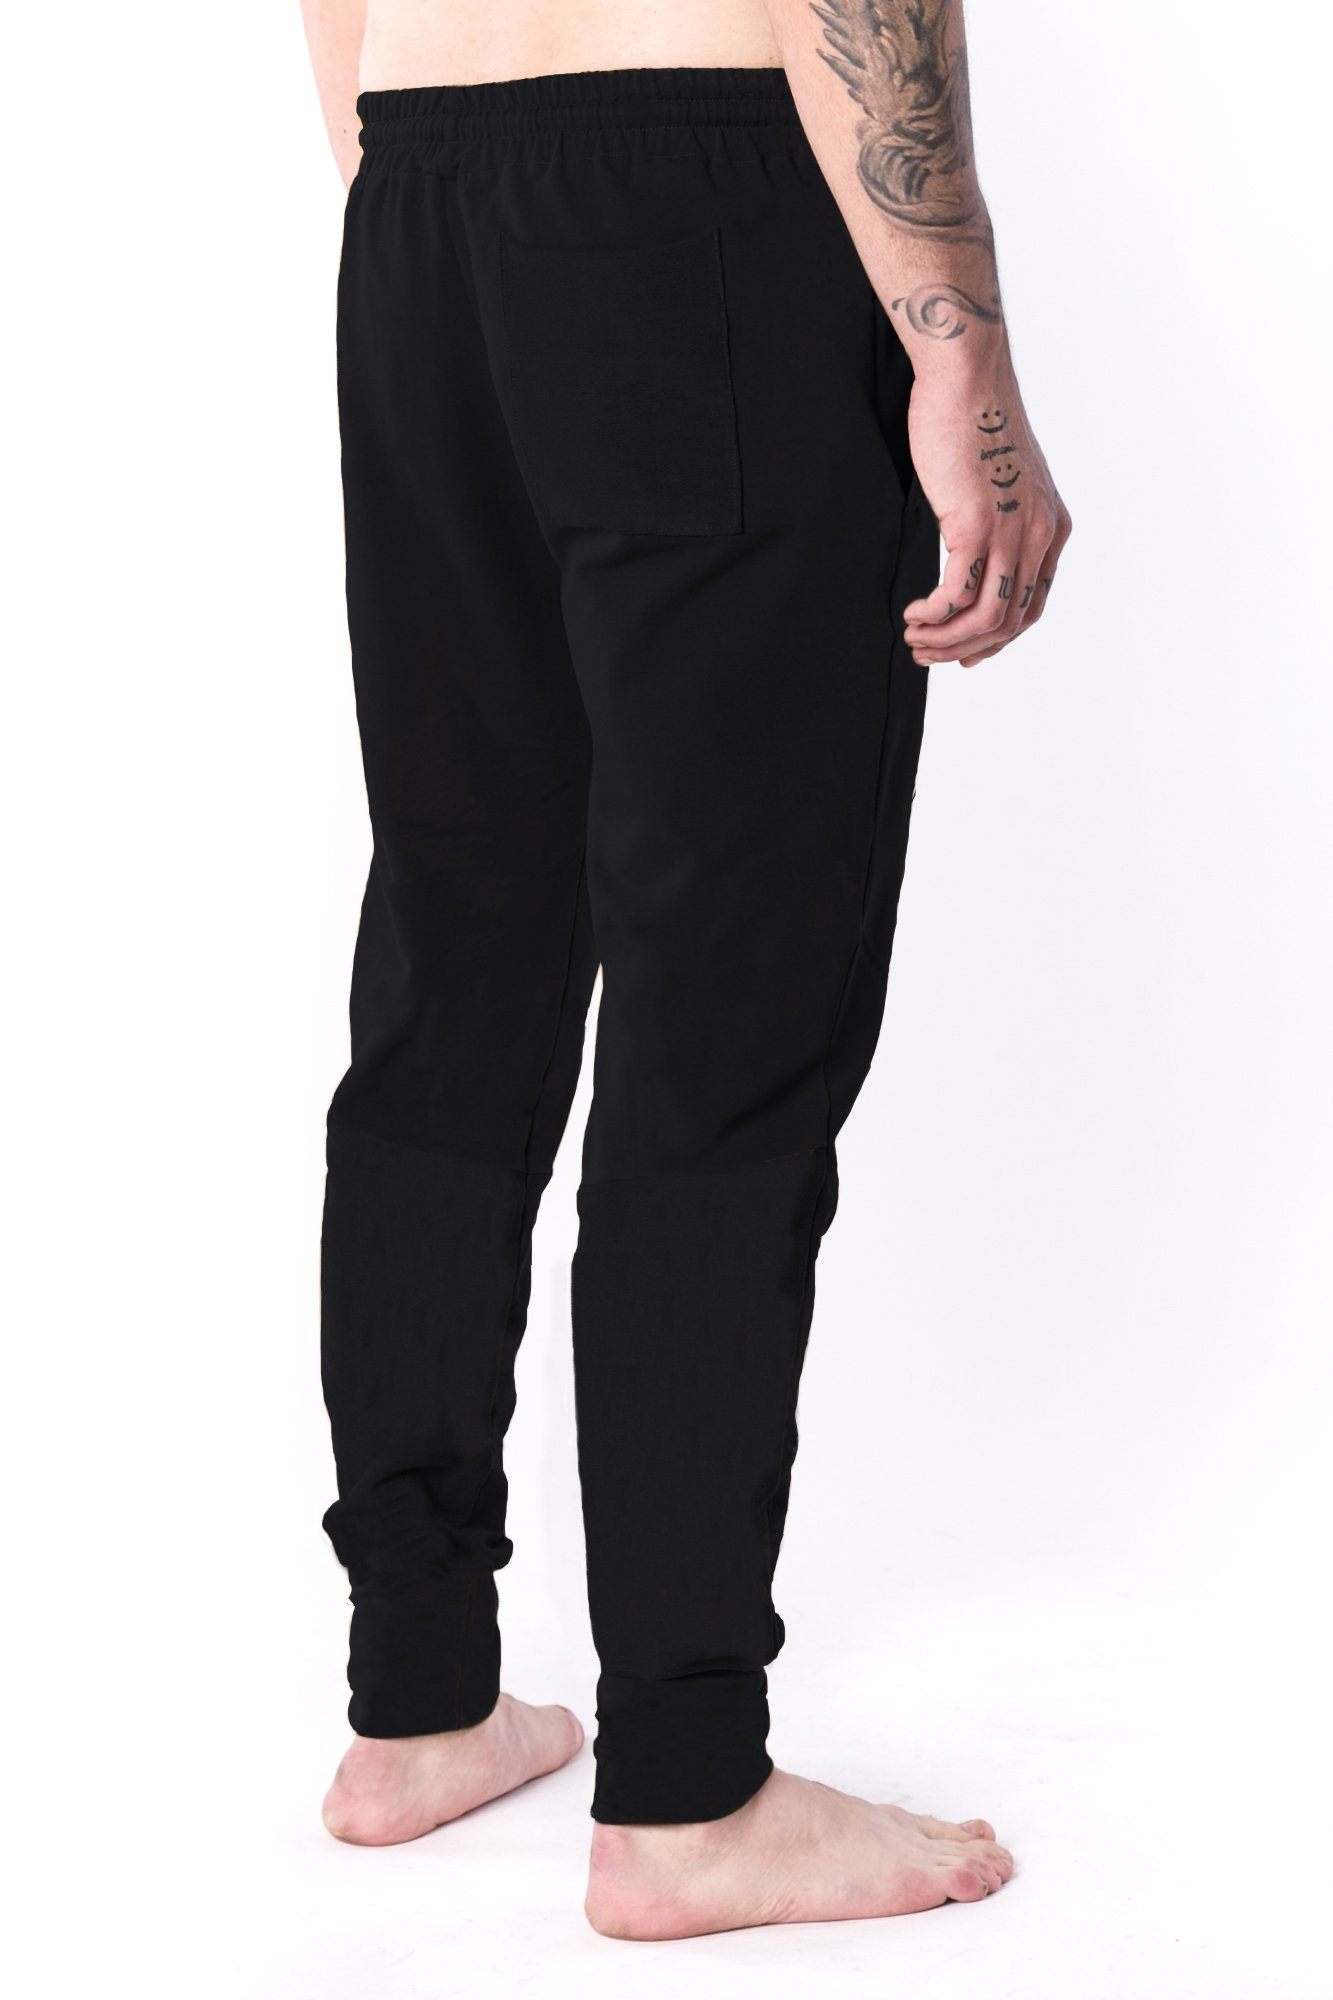 The Man Panelled Jogger 17 // black